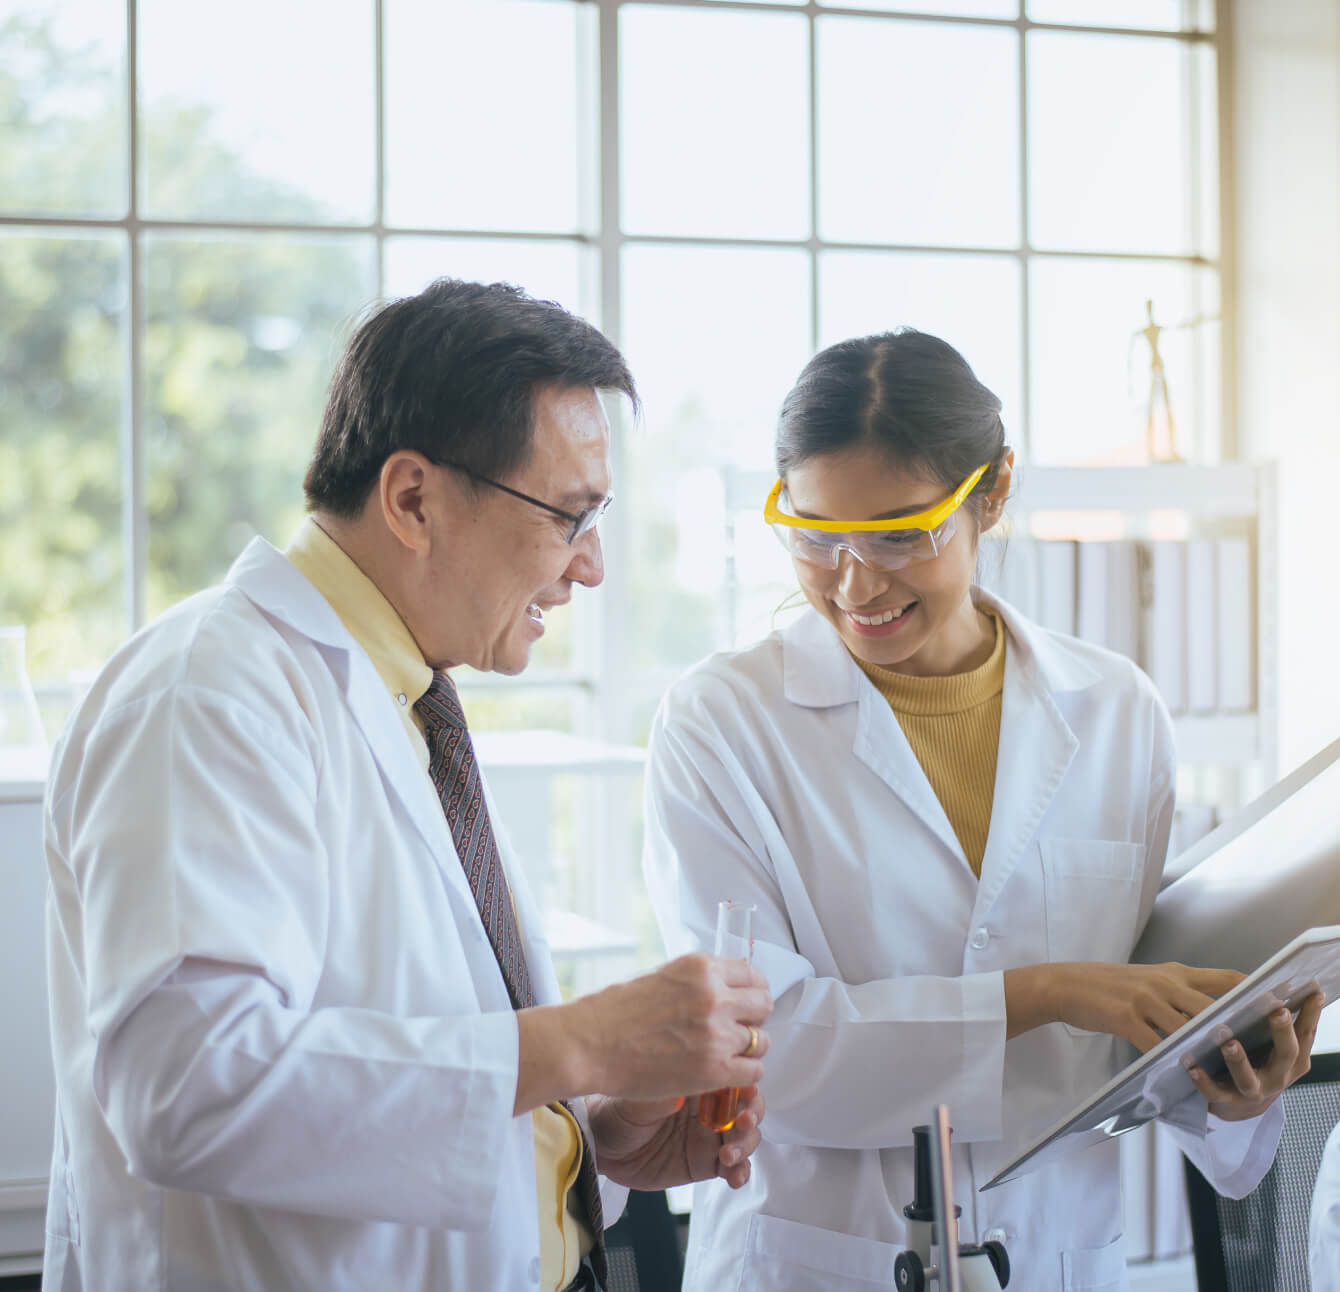 academic-healthcare-scientists-in-lab